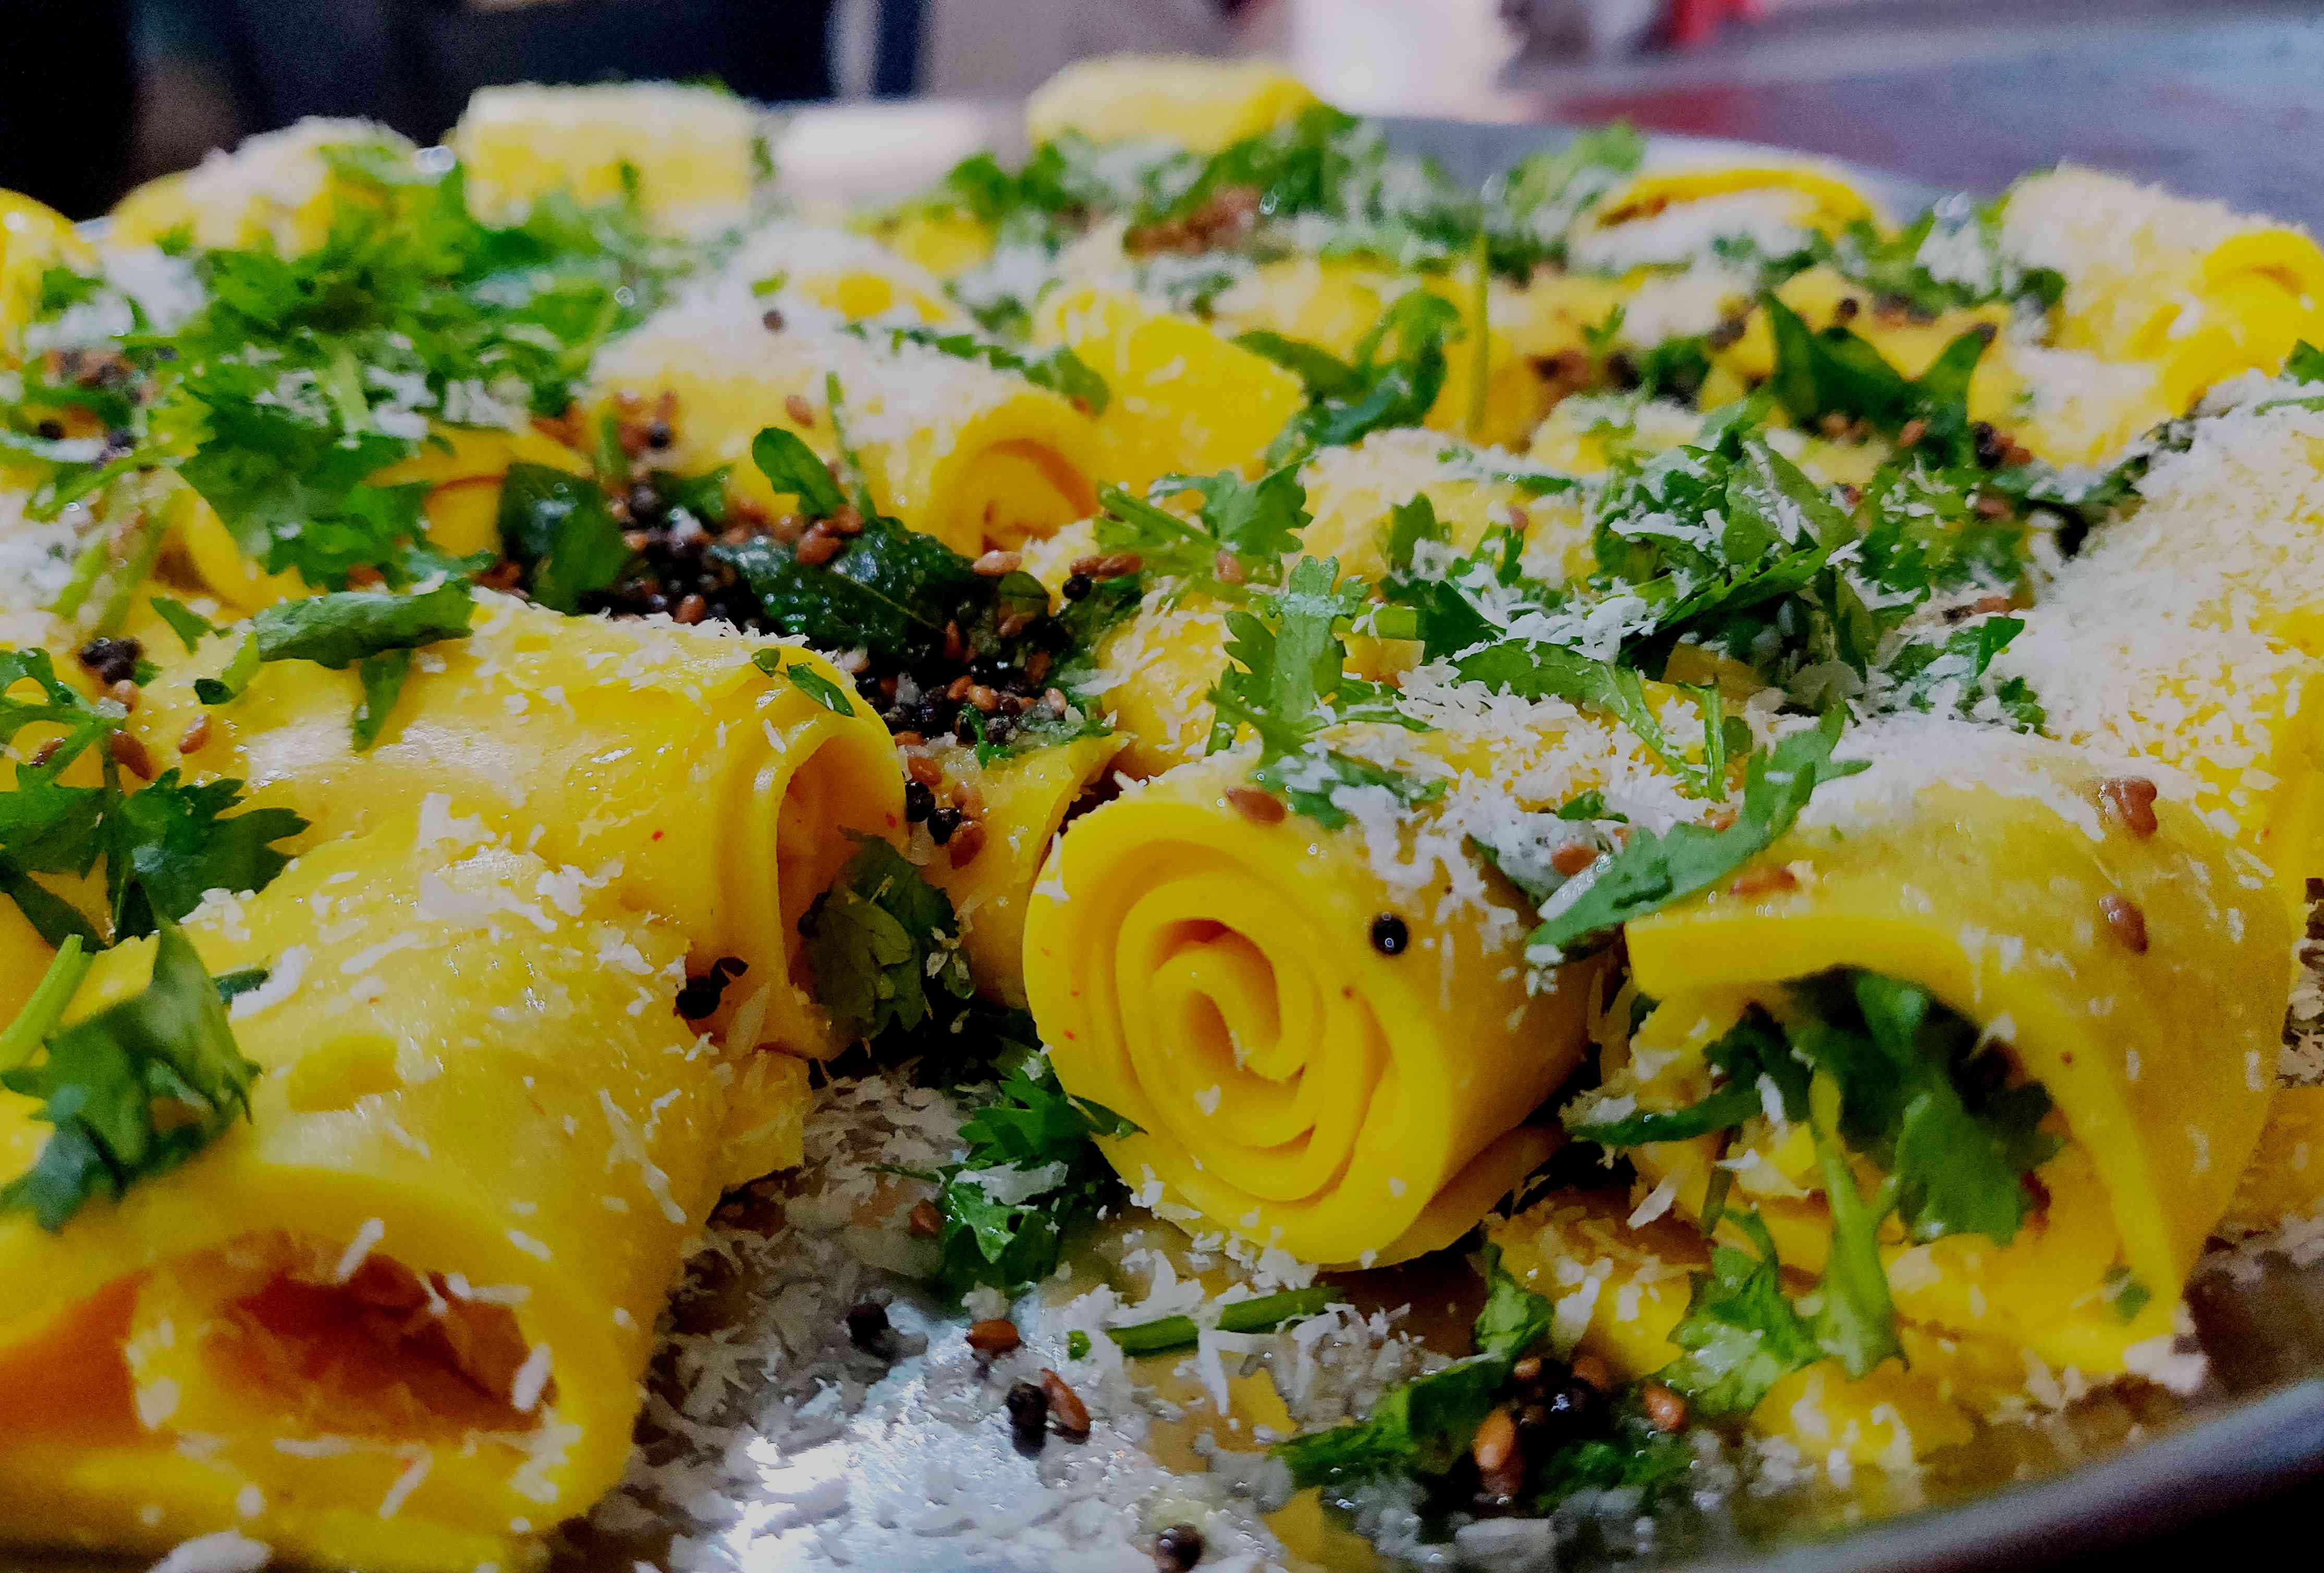 Khandvi, also known as Patuli, Dahivadi or Suralichi Vadi, is a savory snack in Maharashtrian cuisine as well as in Gujarati cuisine of India.